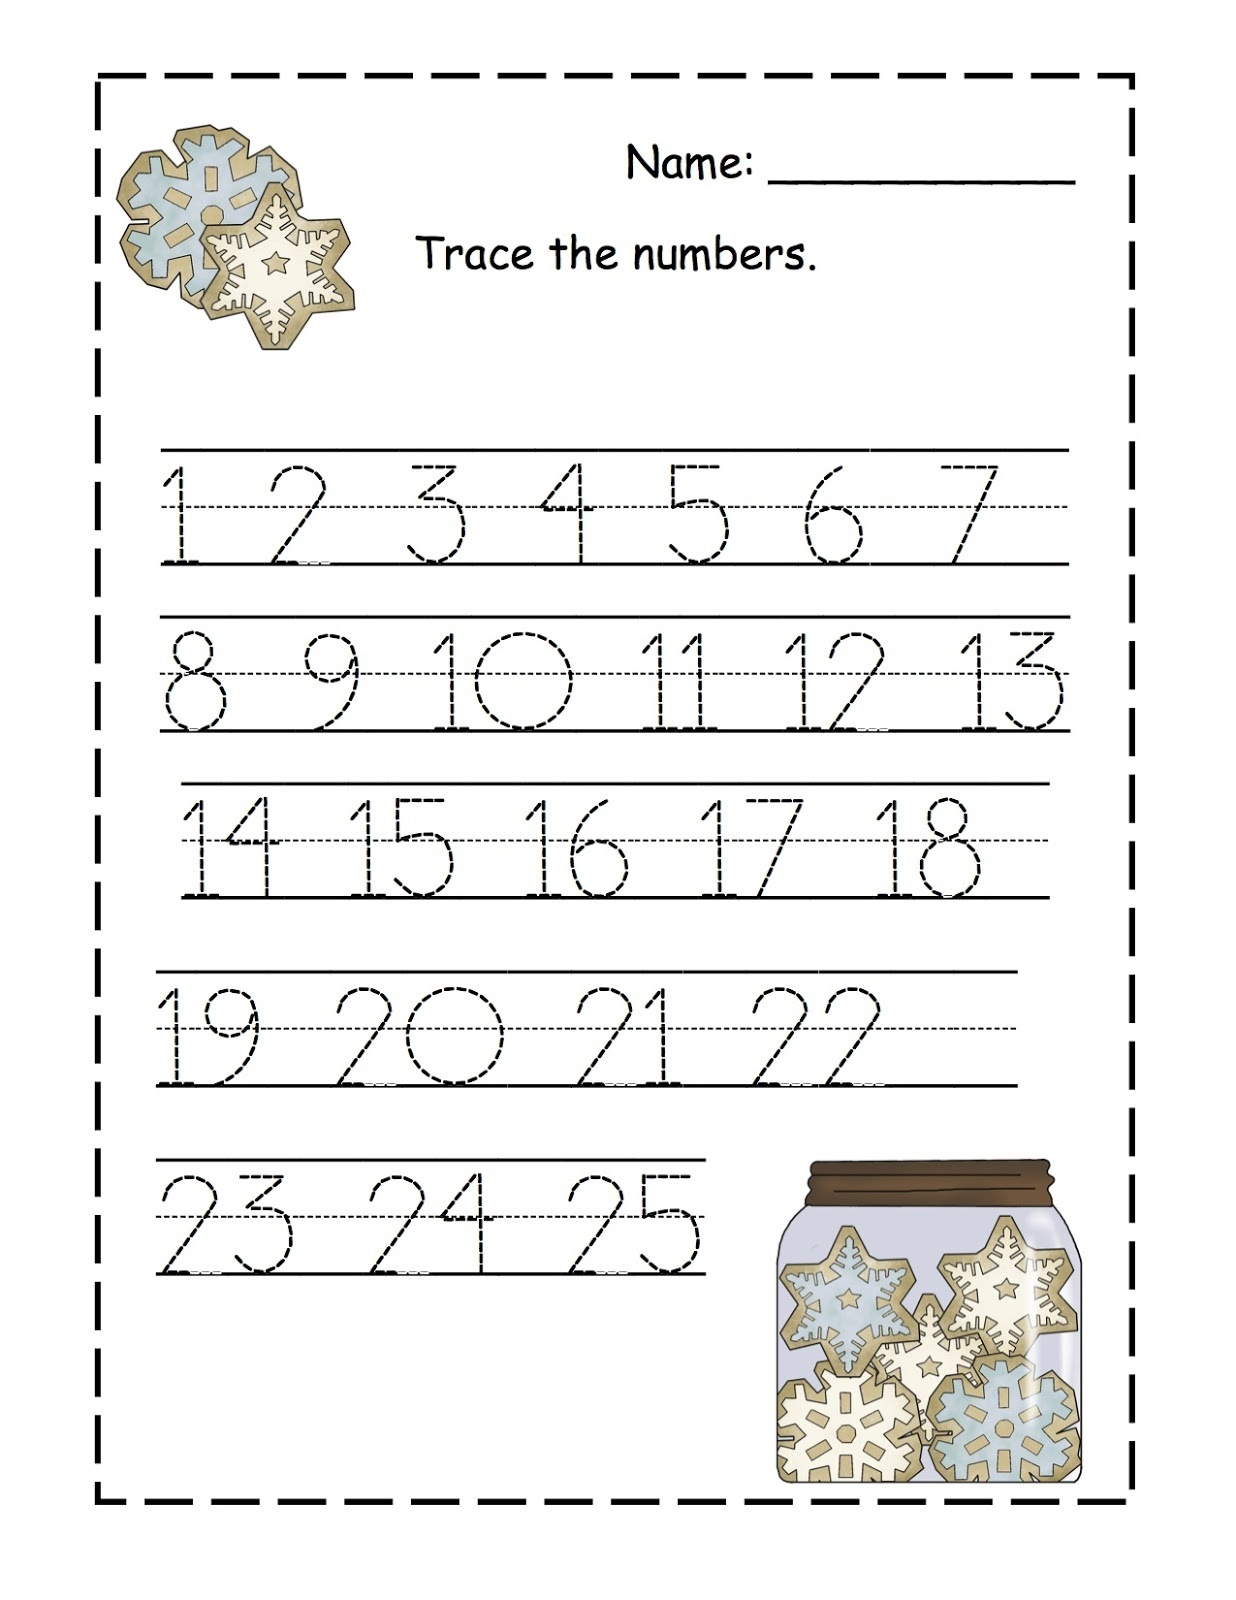 Free Tracing Worksheets Make Your Own Printable Alphabet throughout Alphabet Name Tracing Worksheets